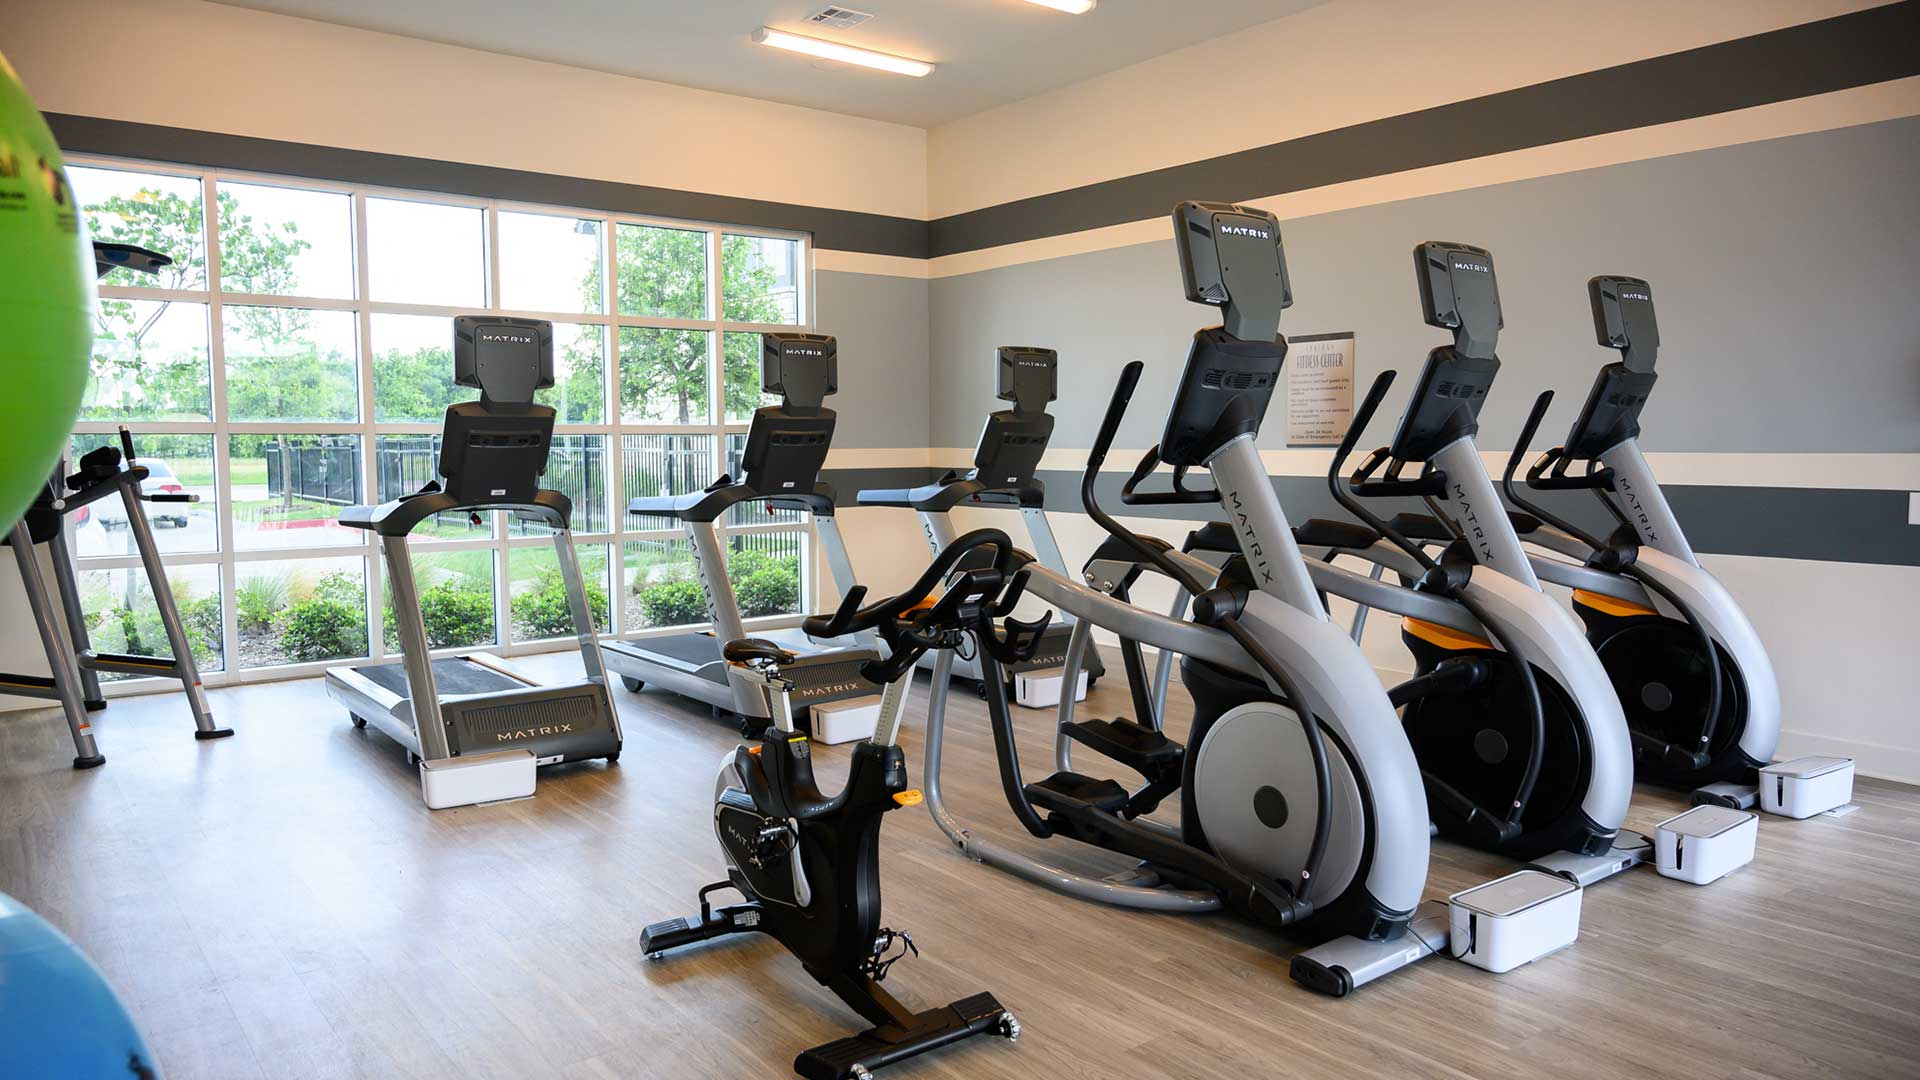 Full equipment fitness center